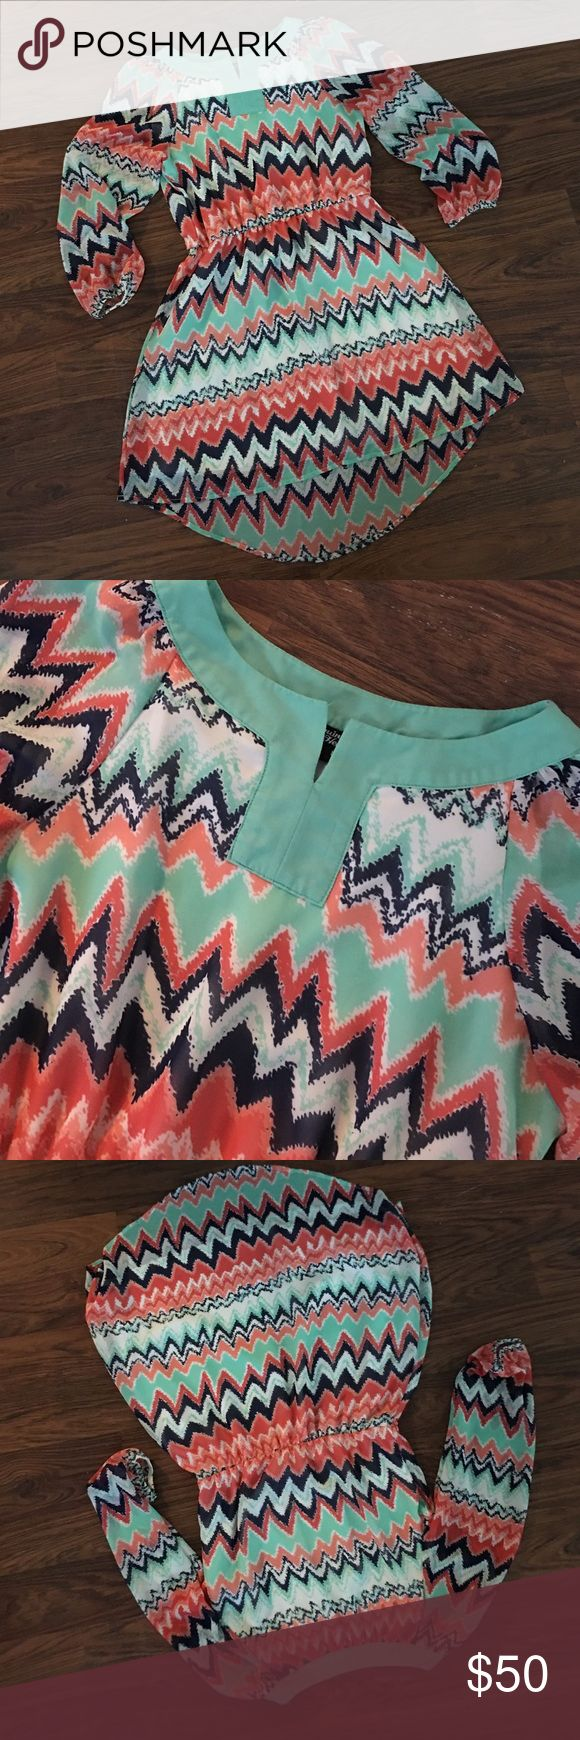 SEQUIN HEARTS Coral Navy Mint Chevron Dress Hi Low Adorable dress from SEQIN HEARTS. Print is an abstract chevron in shades of coral pink / orange, navy blue, mint green and White. Size small. Worn once.  Hem is a high low. So super cute.  Purchased at Nordstrom Sequin Hearts Dresses High Low